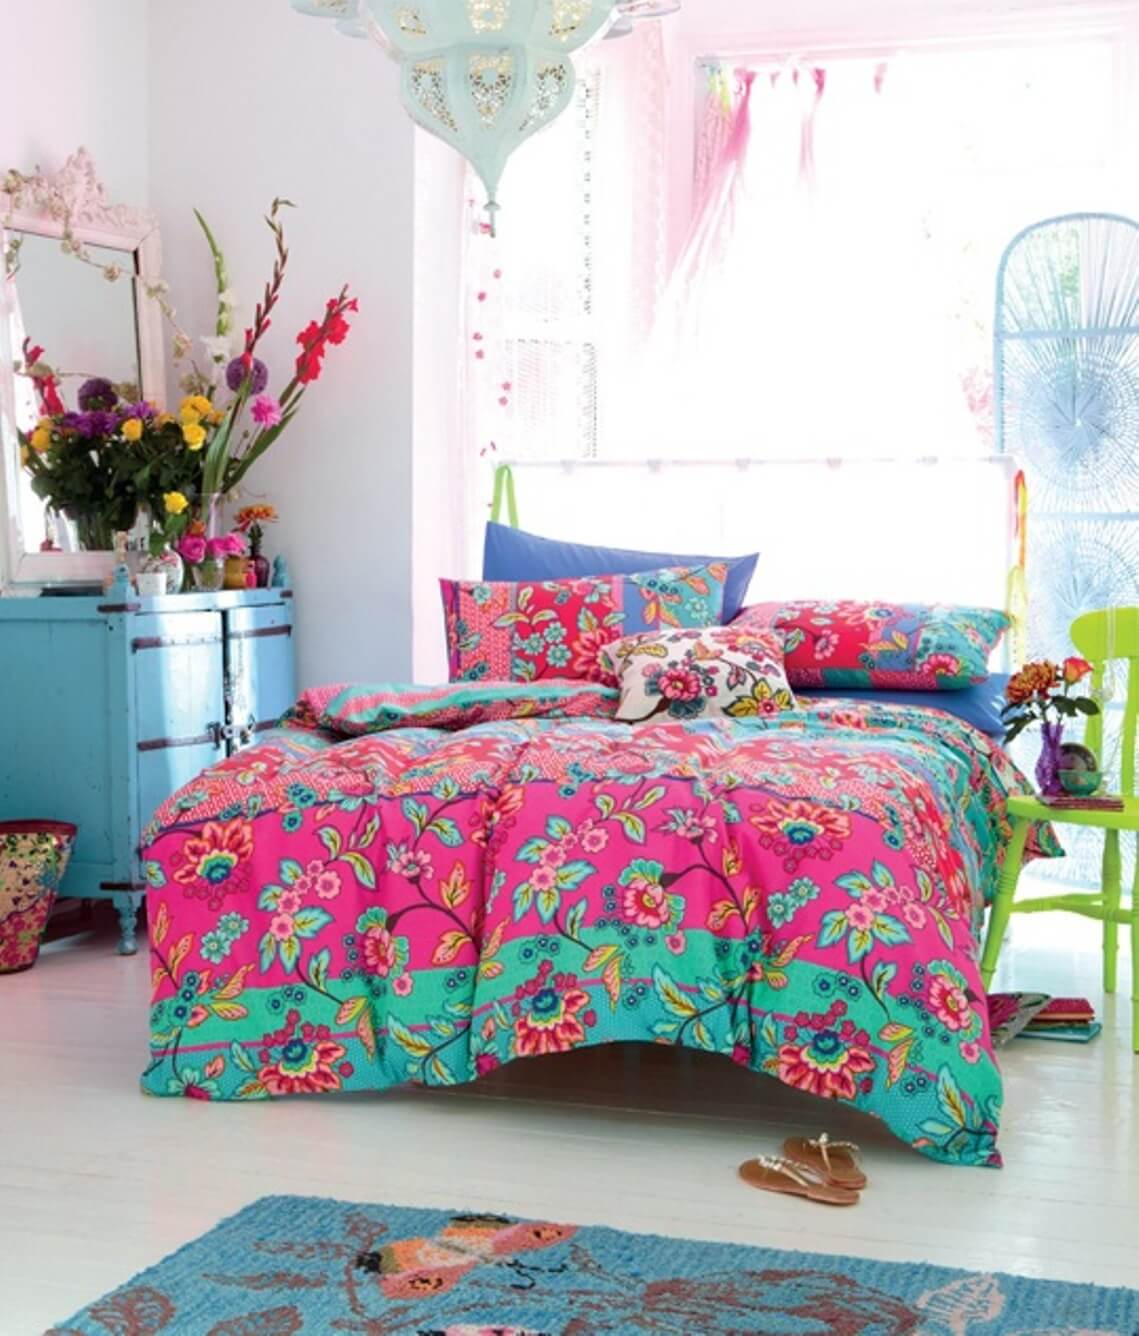 Colorful Room Decor: 8 Bohemian Chic Teen Girl's Bedroom Ideas